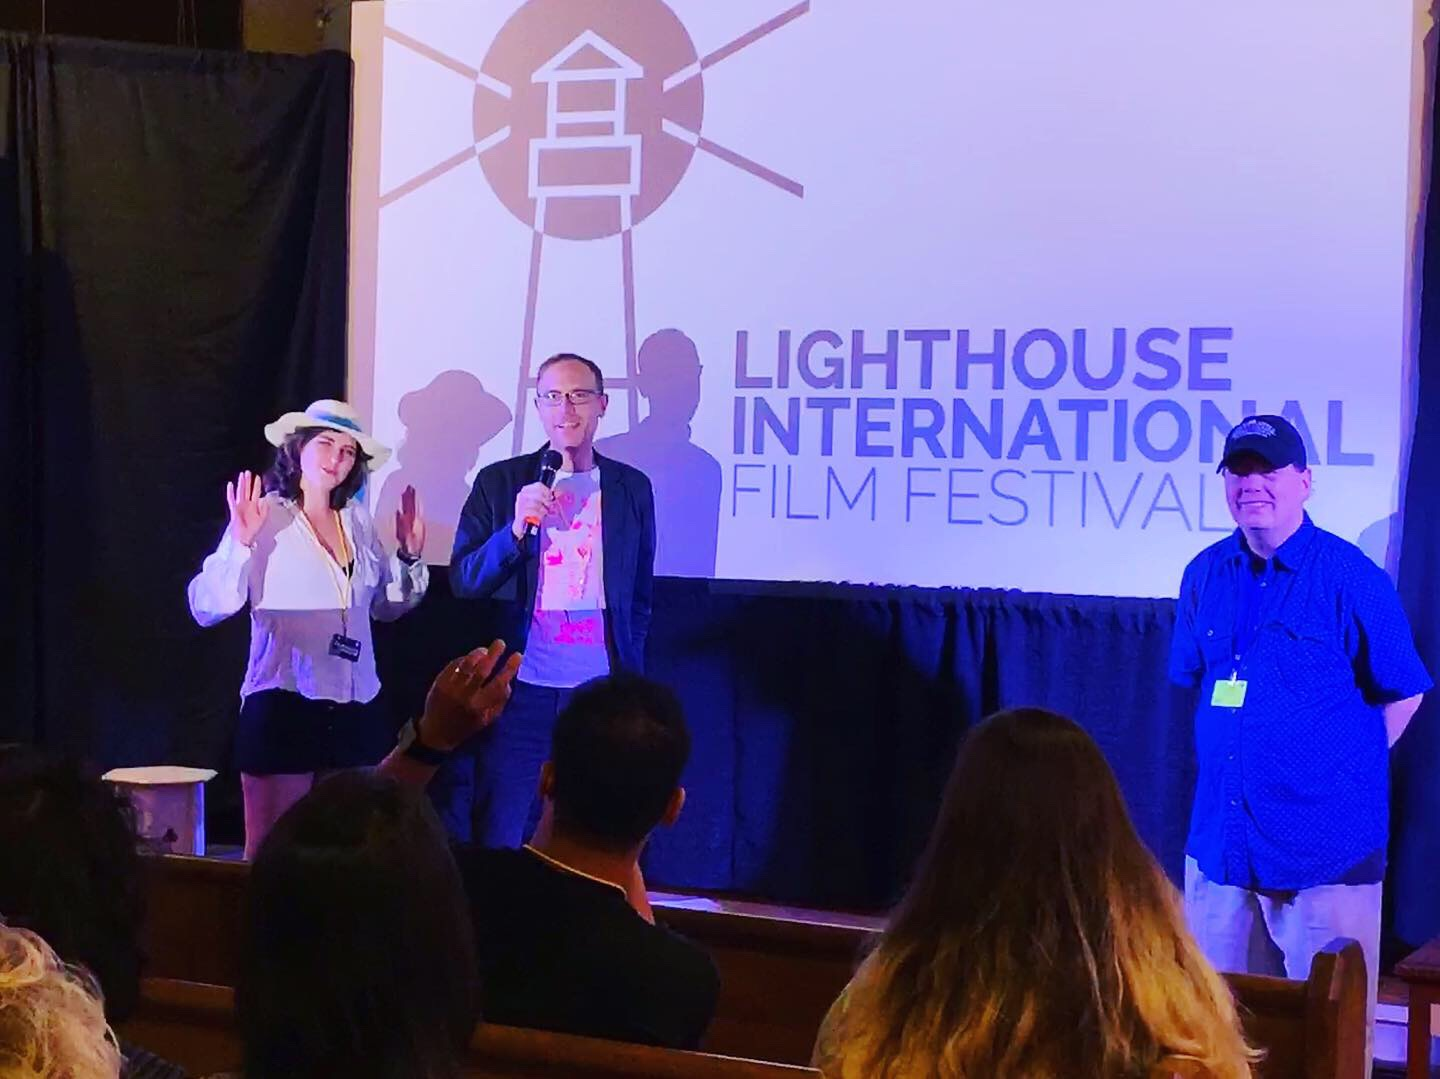 Clayton with Too Late actor Marzy Hart at the 2019 Lighthouse International Film Festival